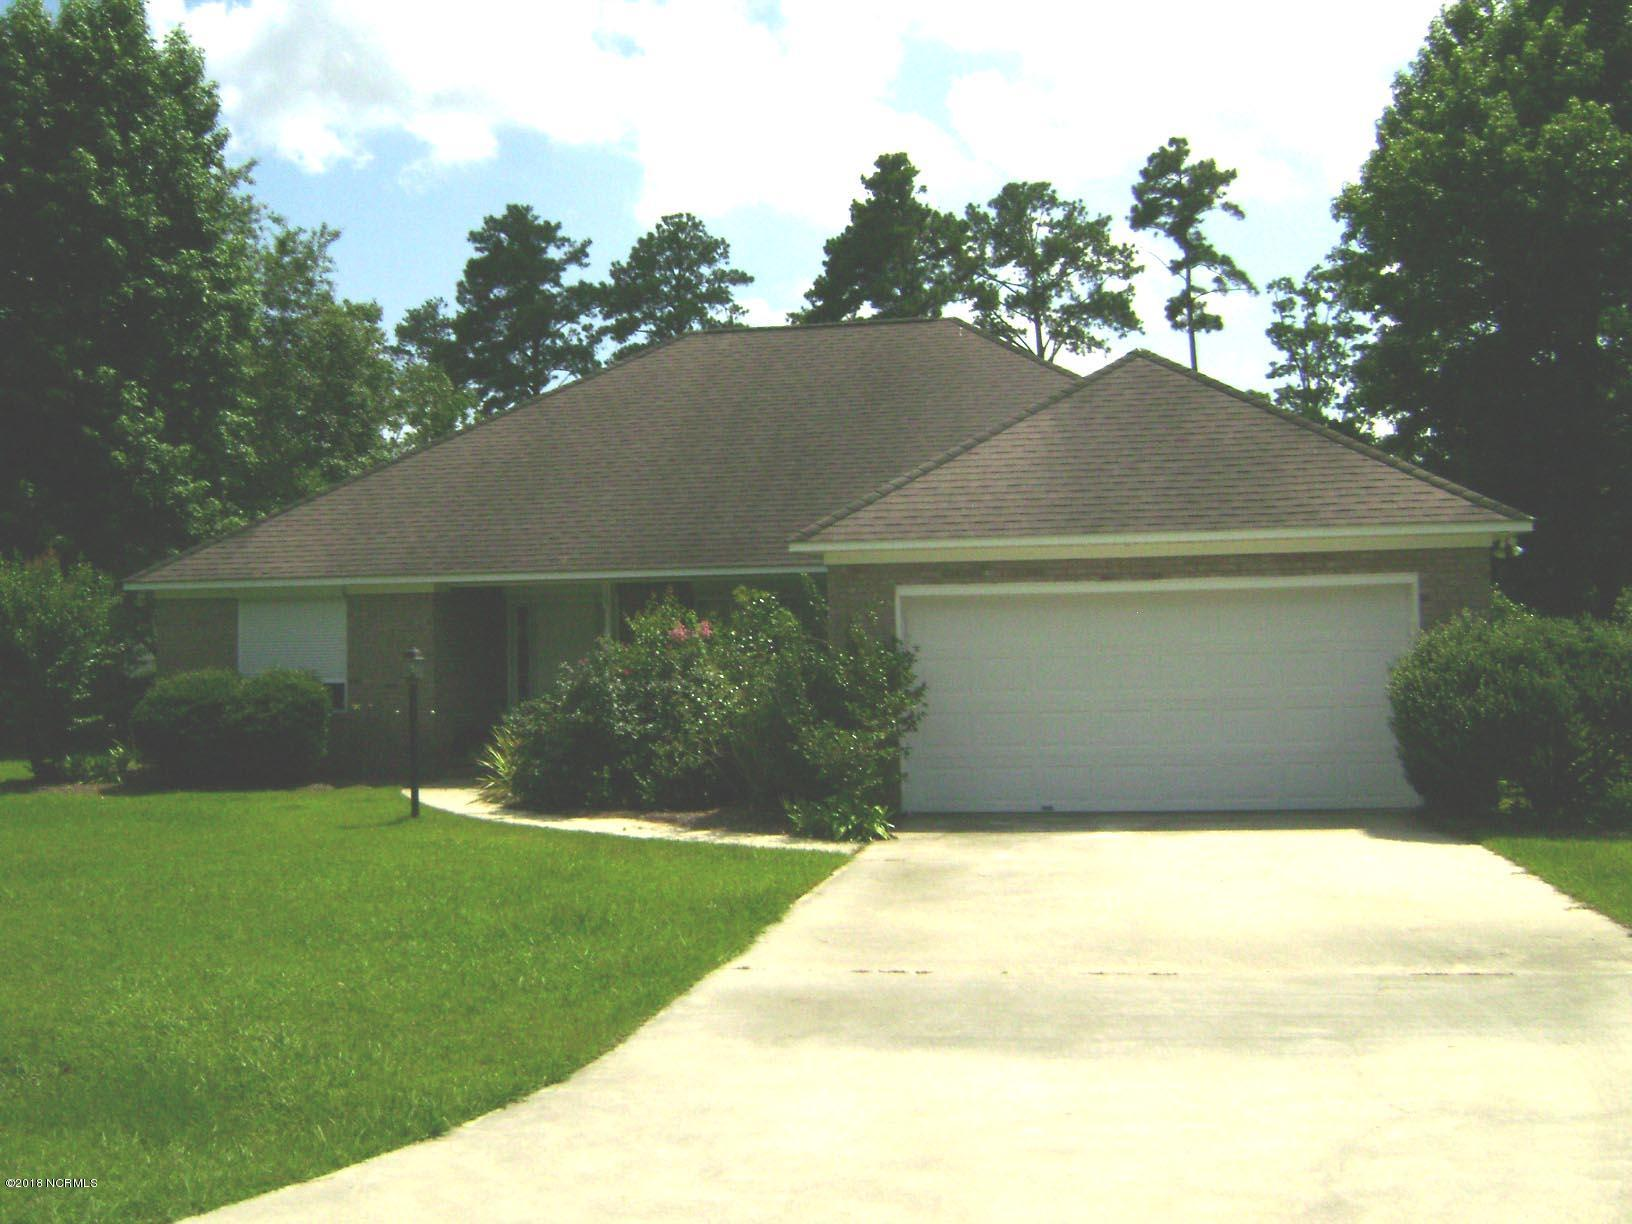 109 Couples Lane, New Bern, North Carolina, 3 Bedrooms Bedrooms, 5 Rooms Rooms,2 BathroomsBathrooms,Single family residence,For sale,Couples,100123297